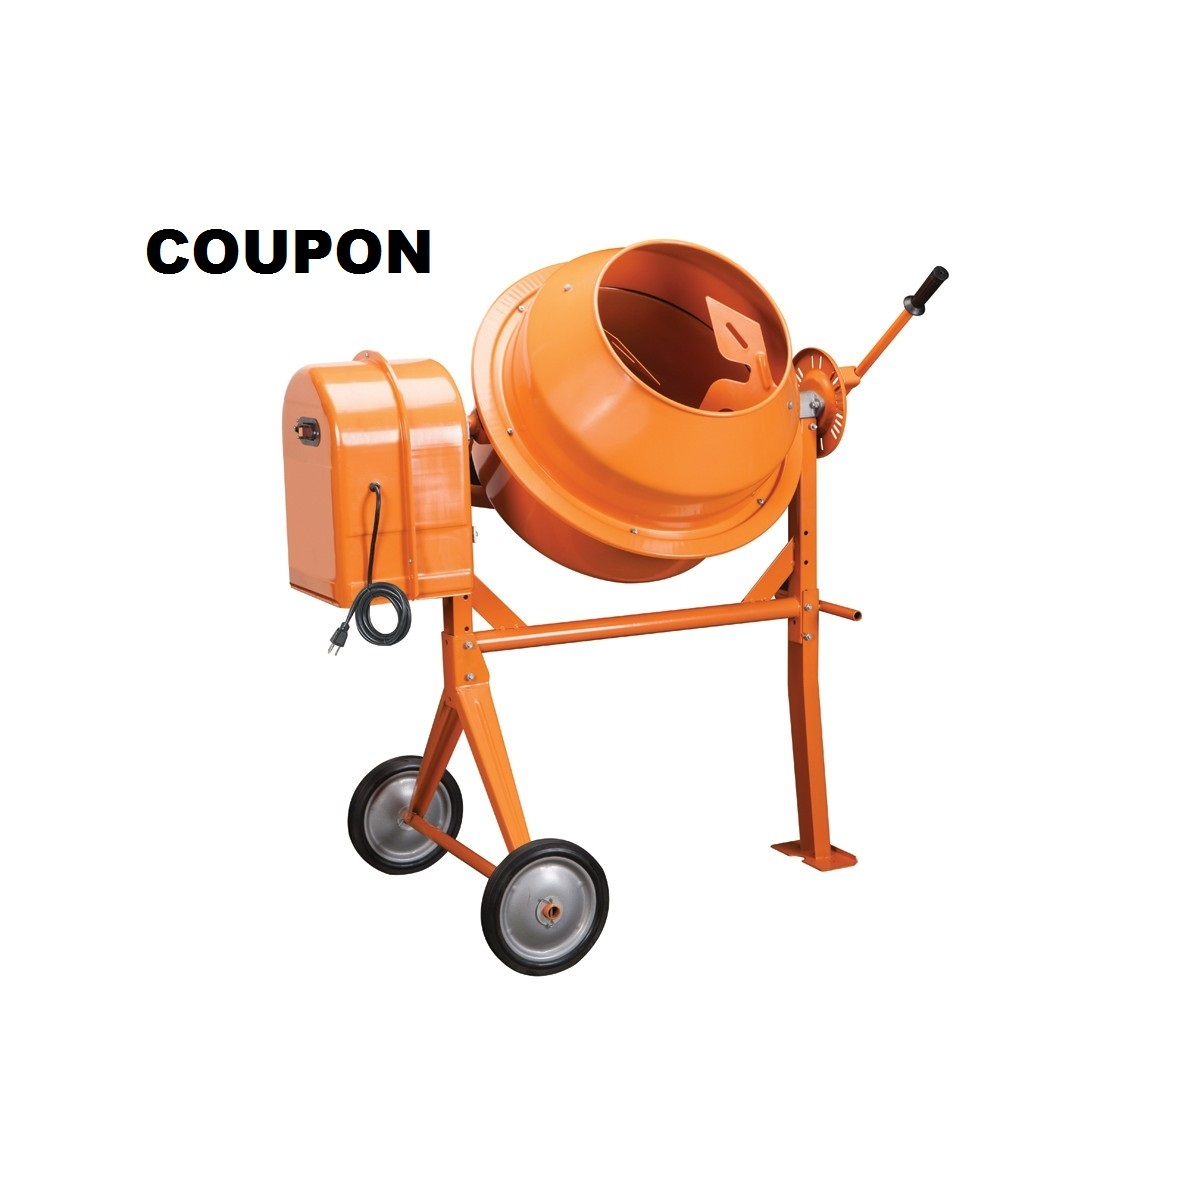 Cement Mixer Blades : Cement mixer cubic ft save with this super